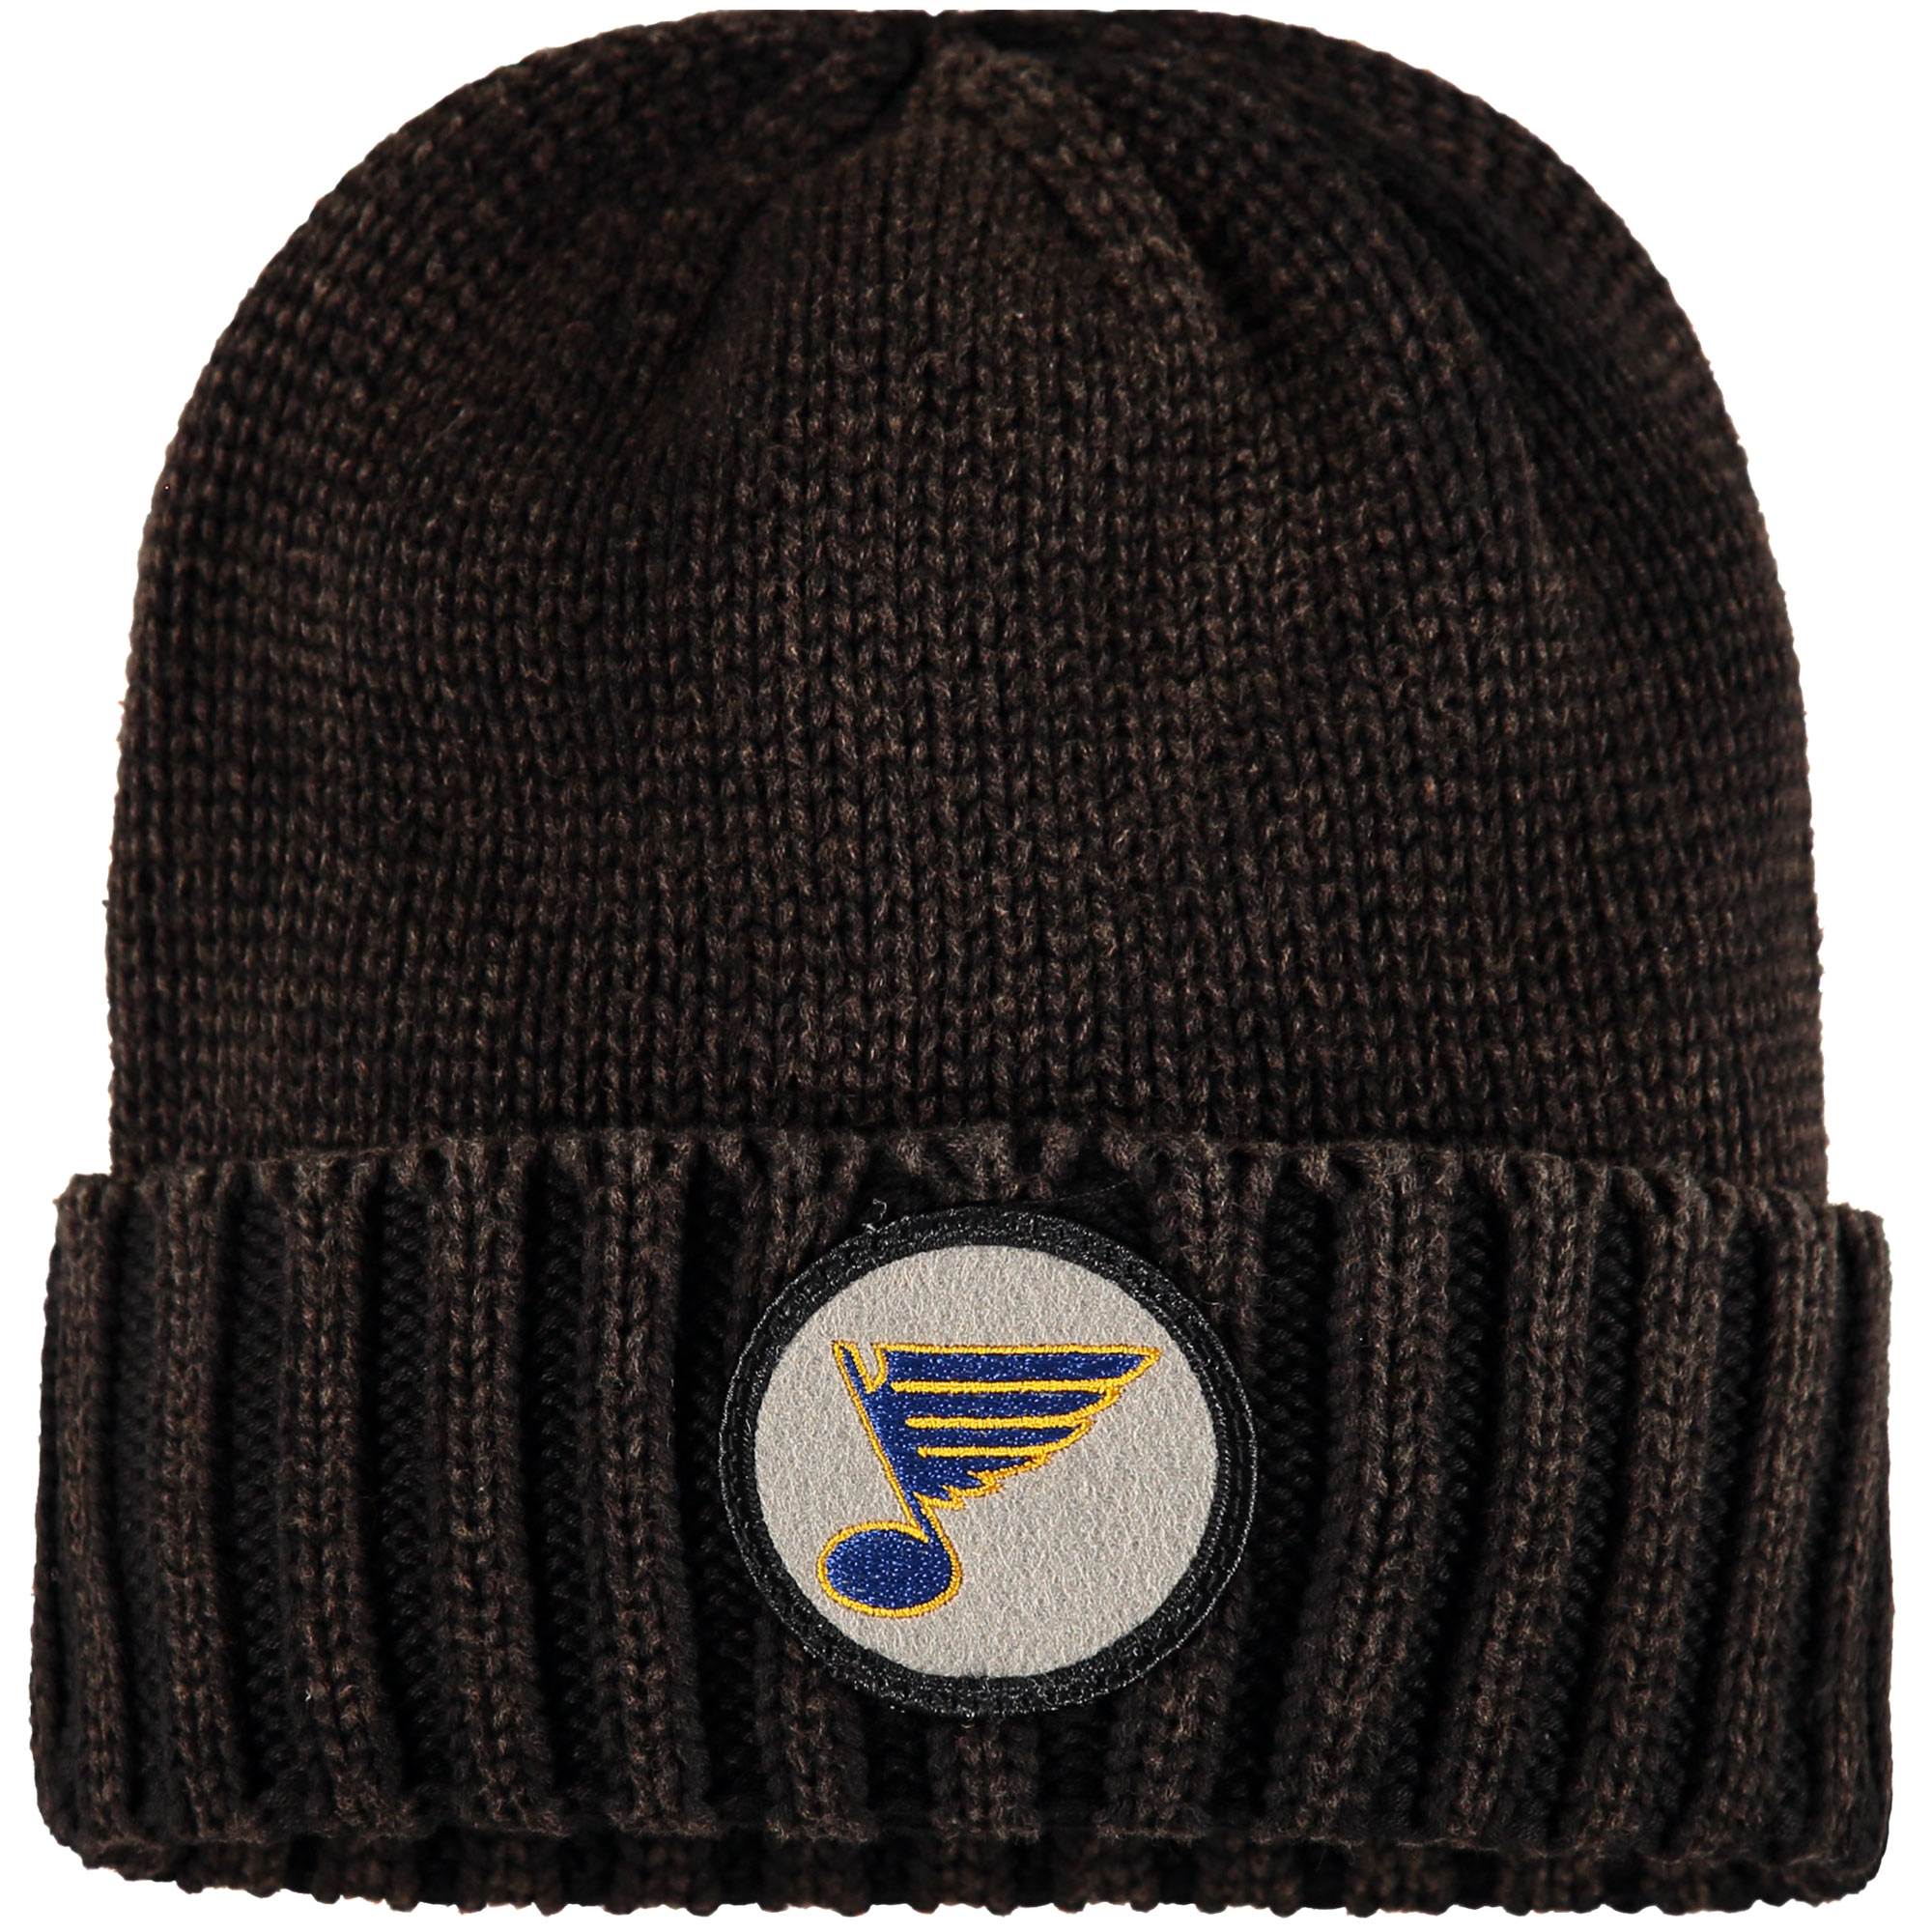 St. Louis Blues Mitchell & Ness Vintage Ribbed Cuffed Knit Hat Brown OSFA by MITCHELL NESS CO.